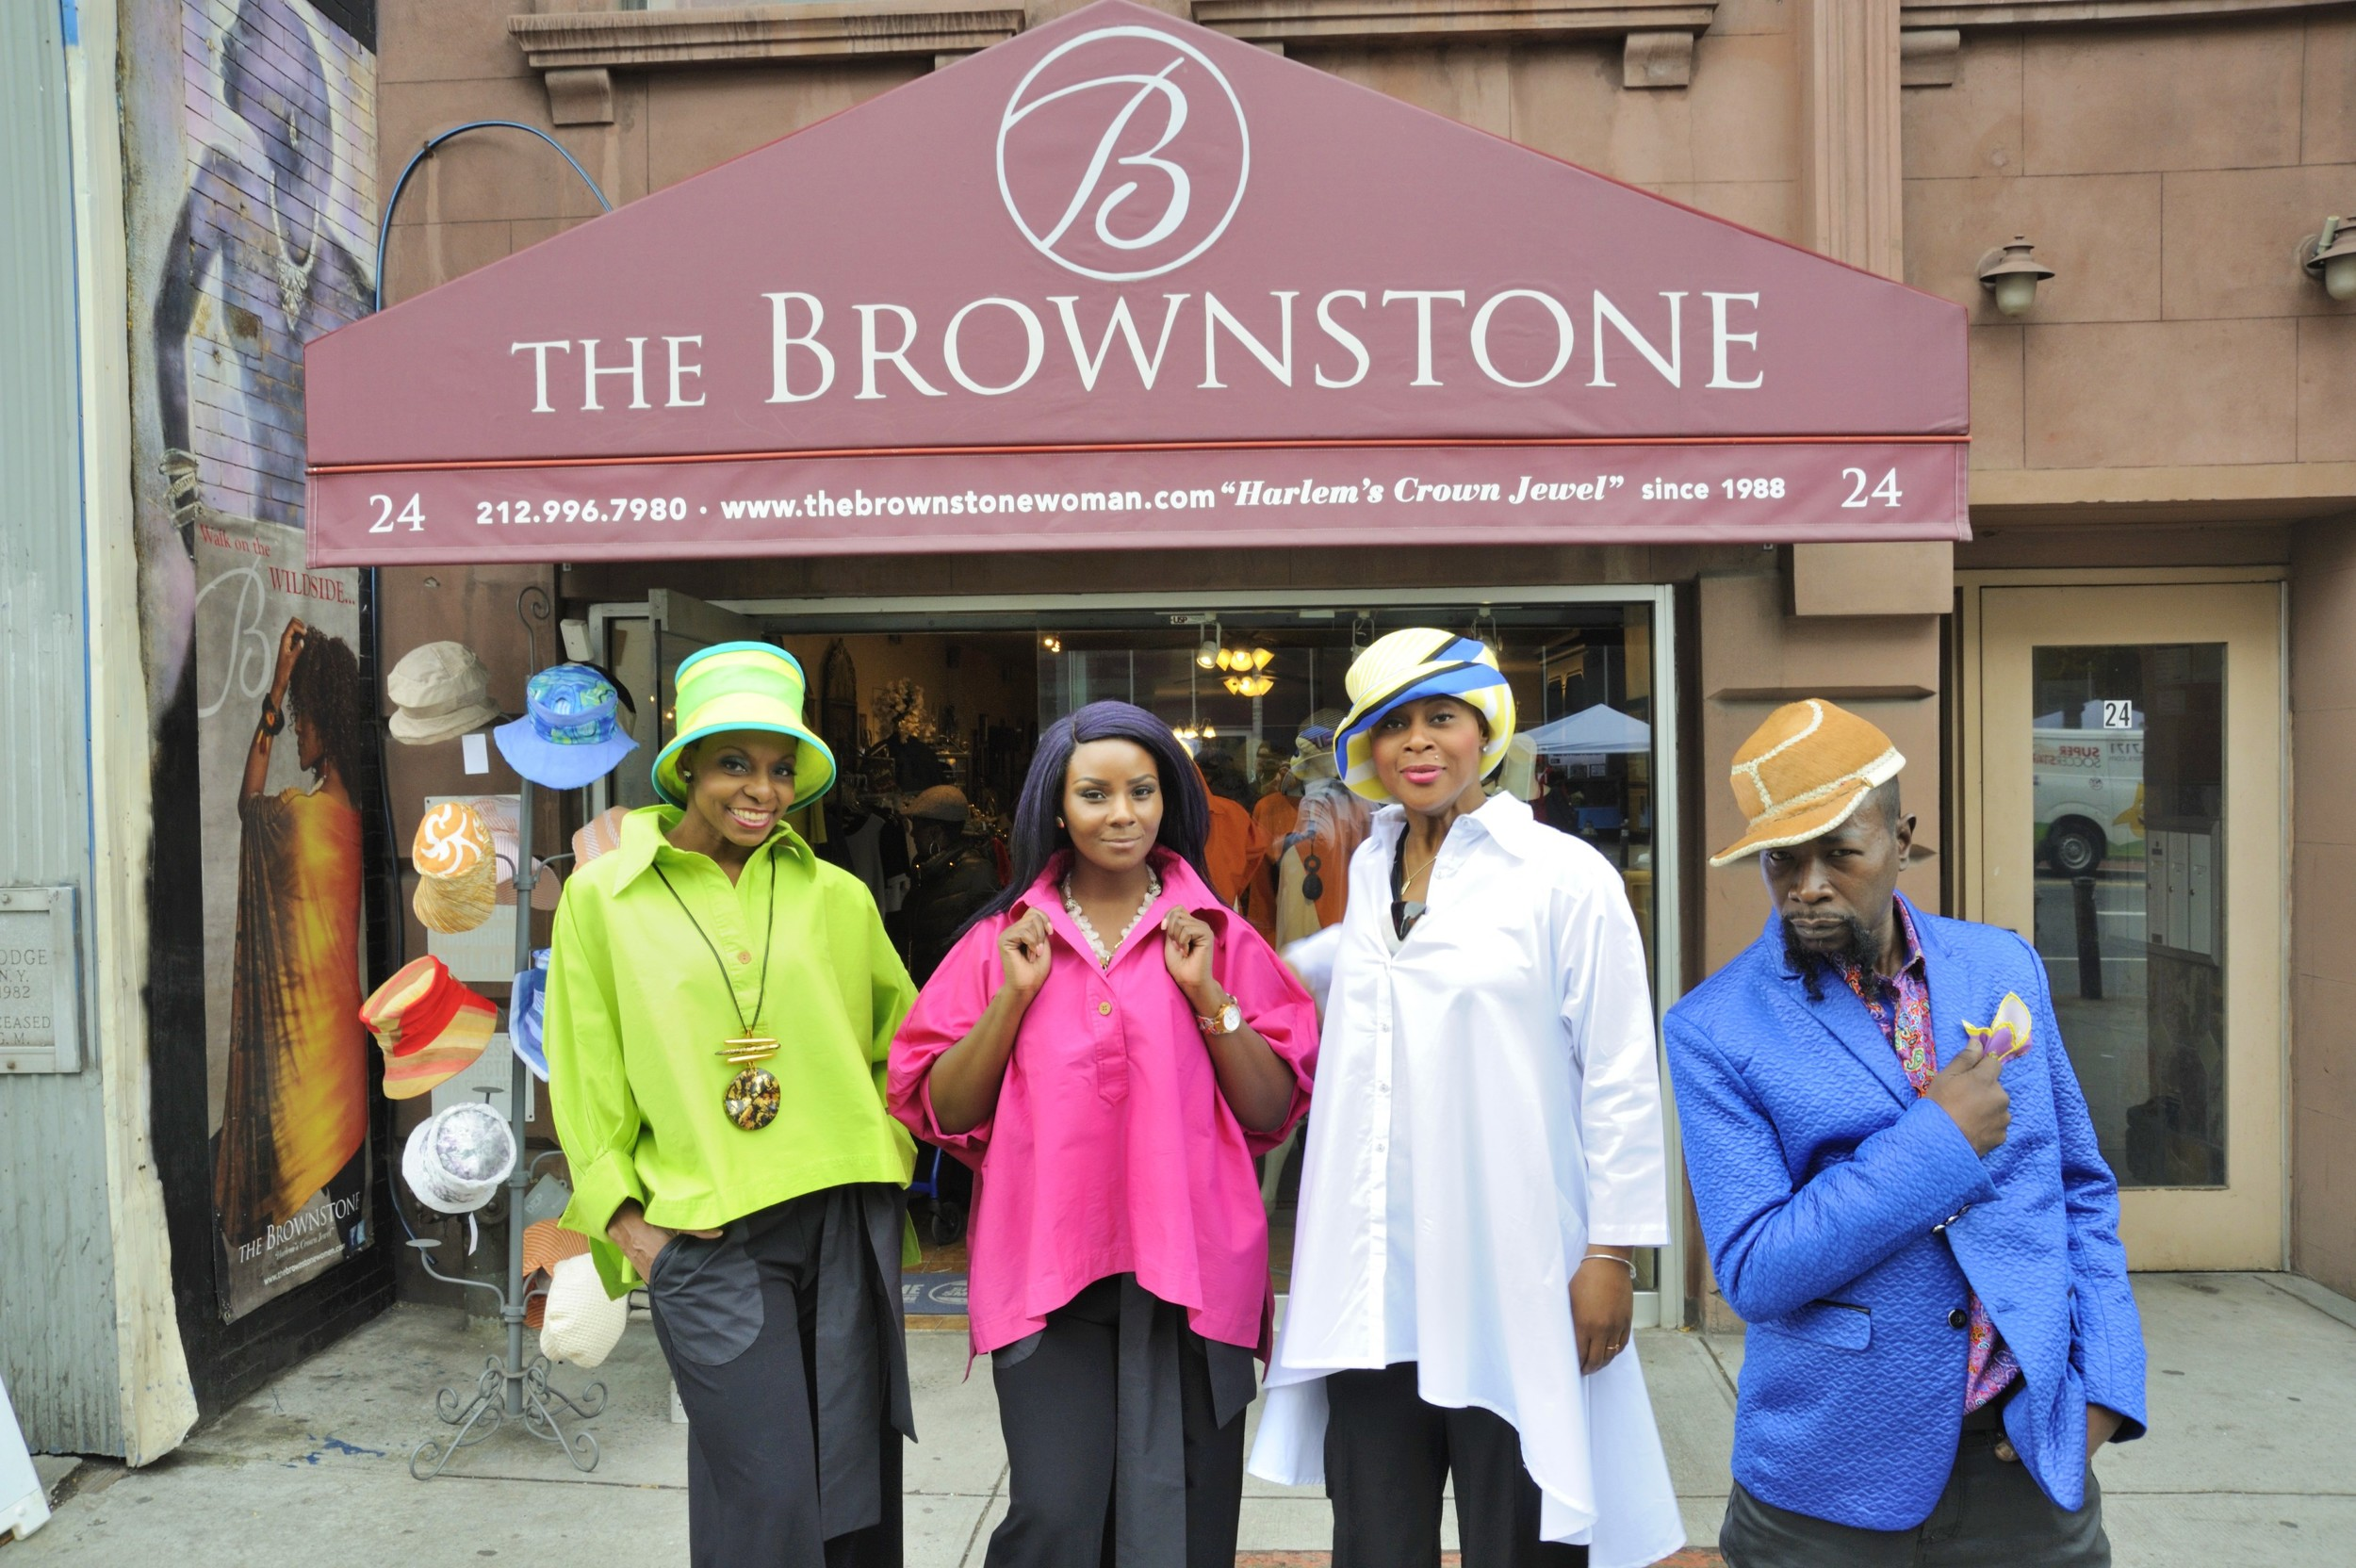 The Brownstone Boutique